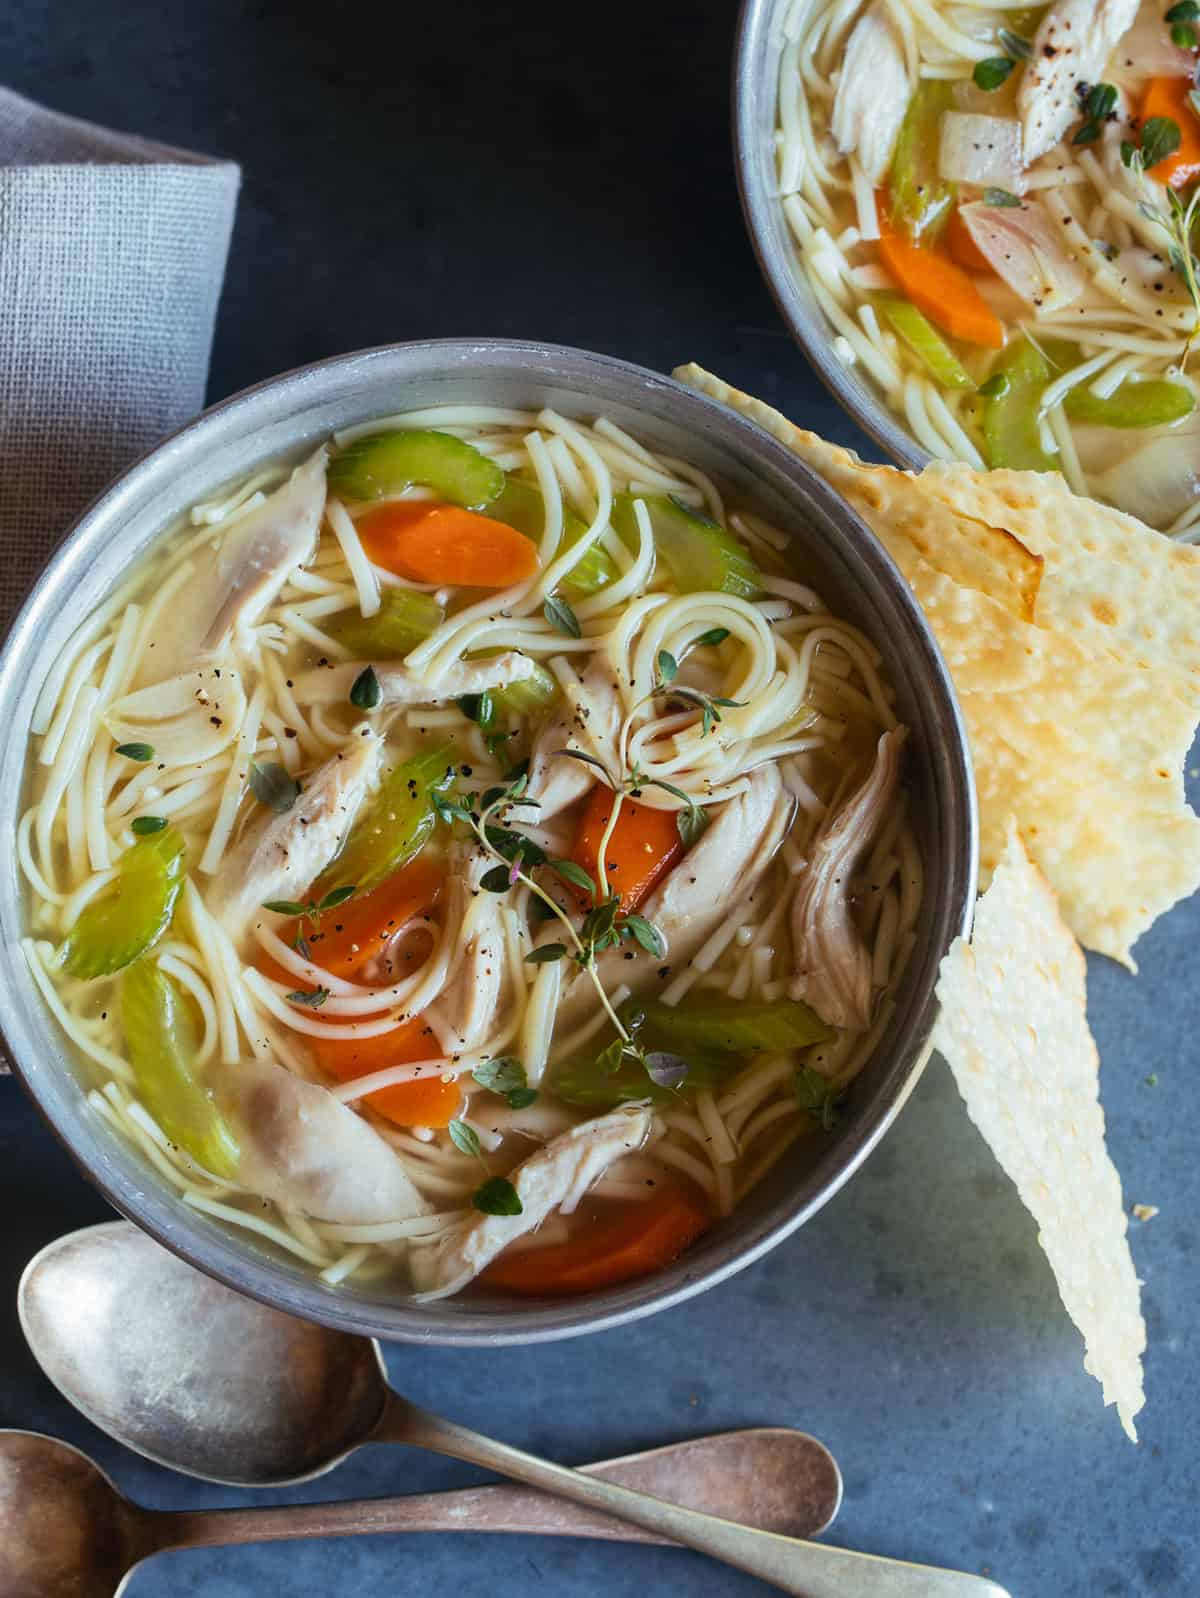 Bowls of chicken noodle soup with a spoon.